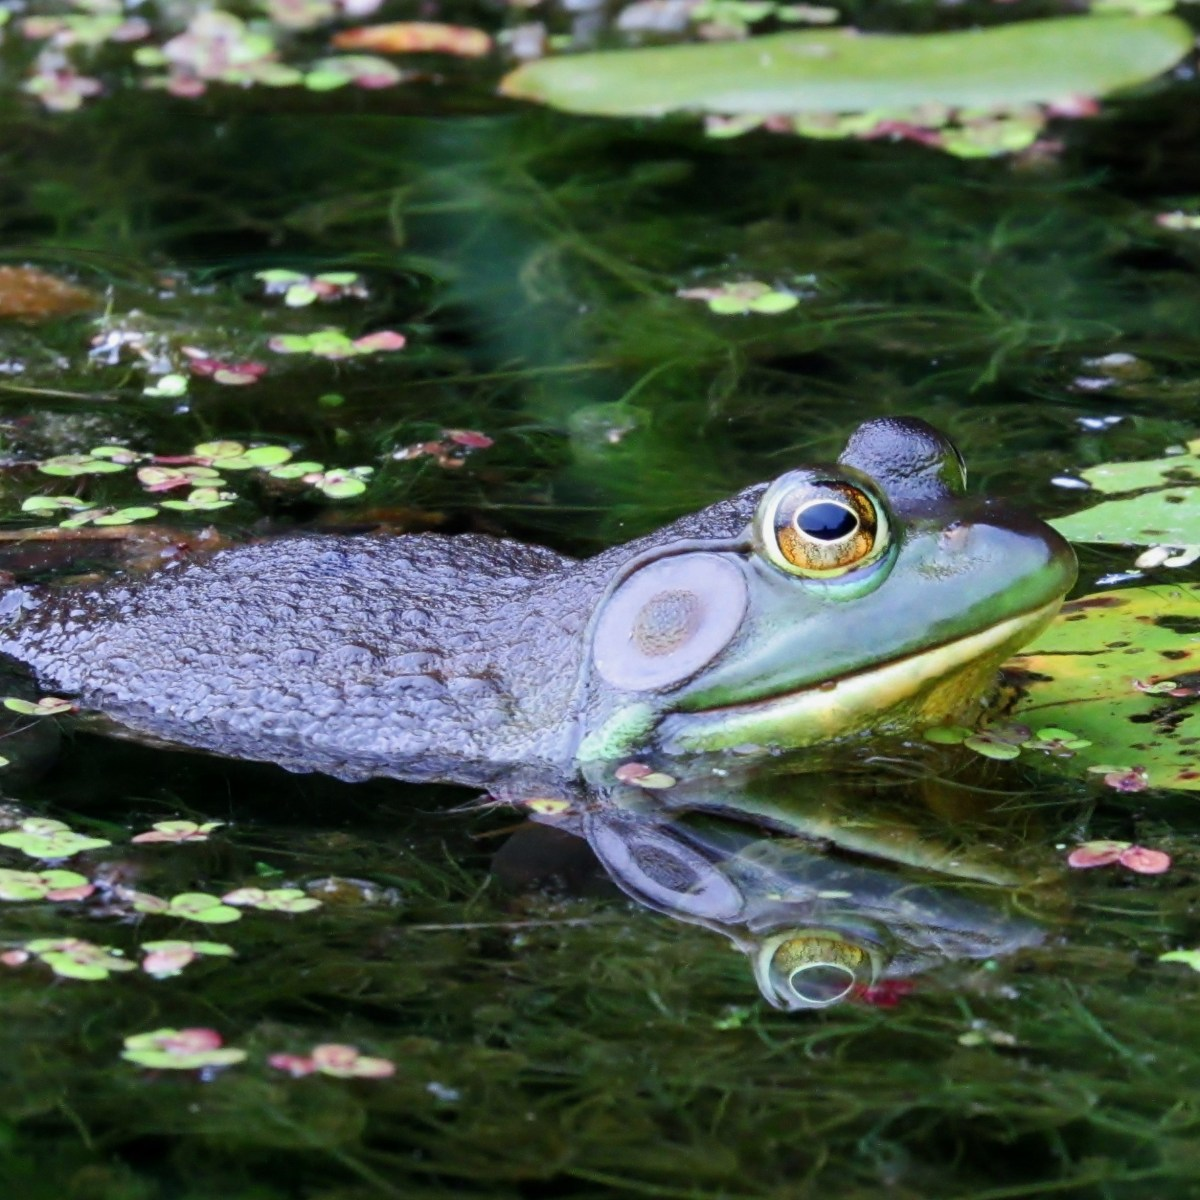 A male bullfrog swims among duckweed and lily pads